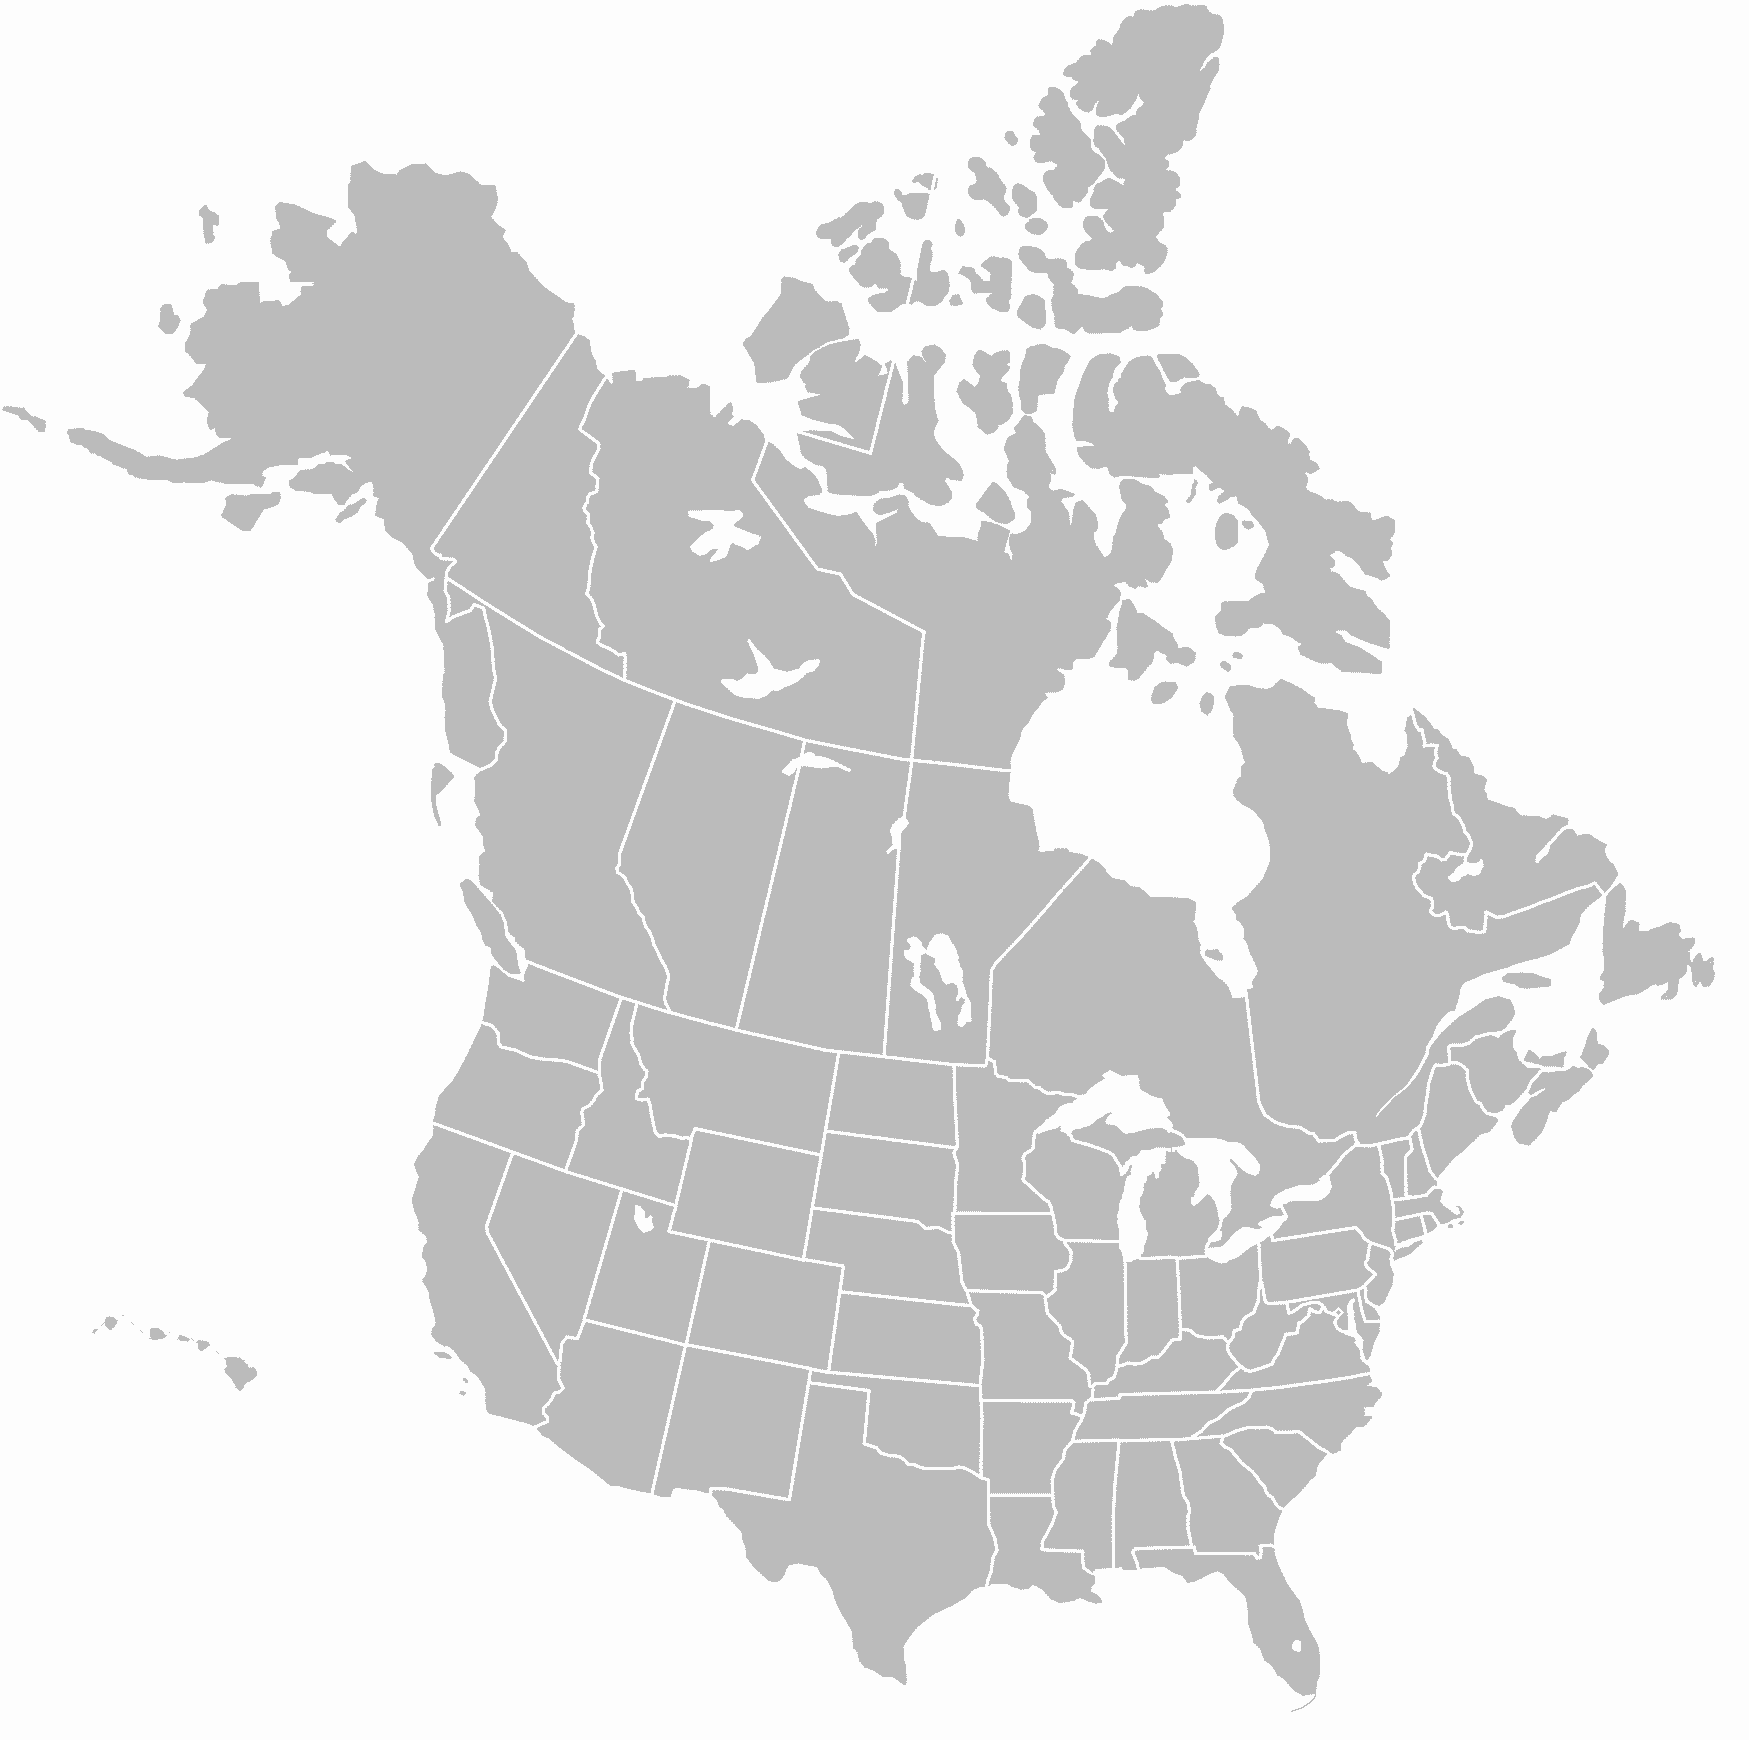 photo about Printable North America Map identified as History:North The us blank map with nation and province